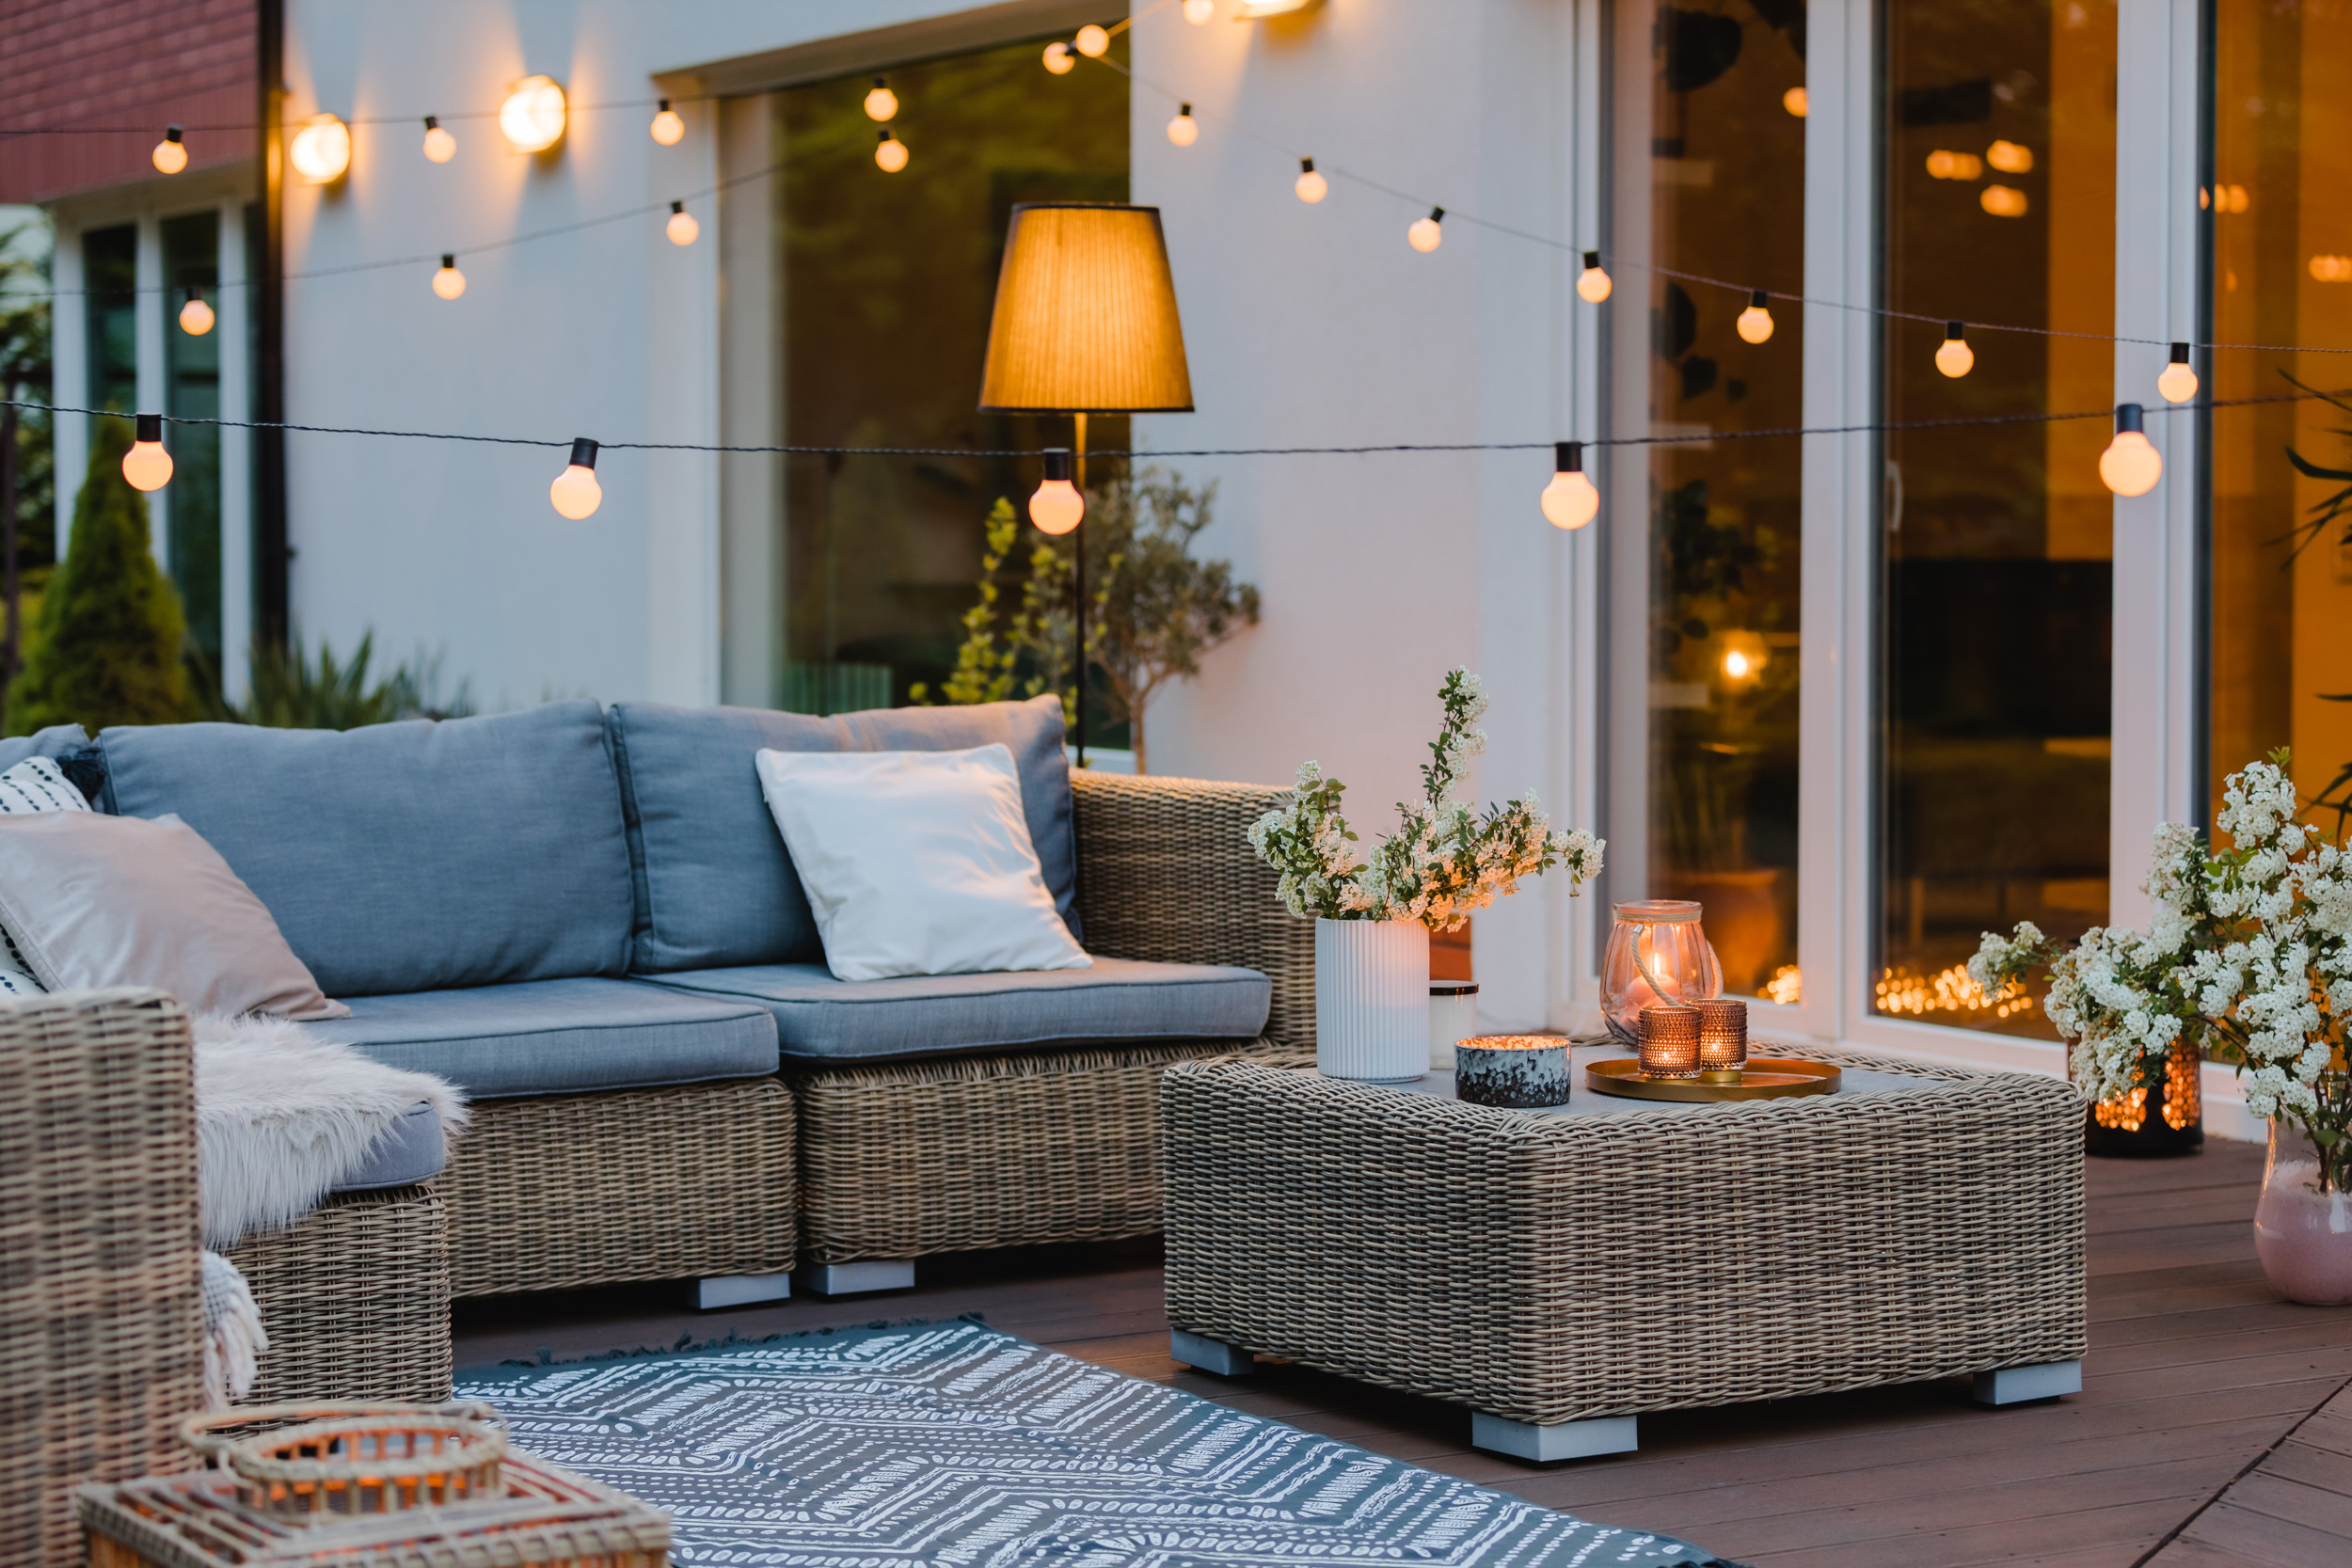 outdoor lighting installation by Kelly Electric